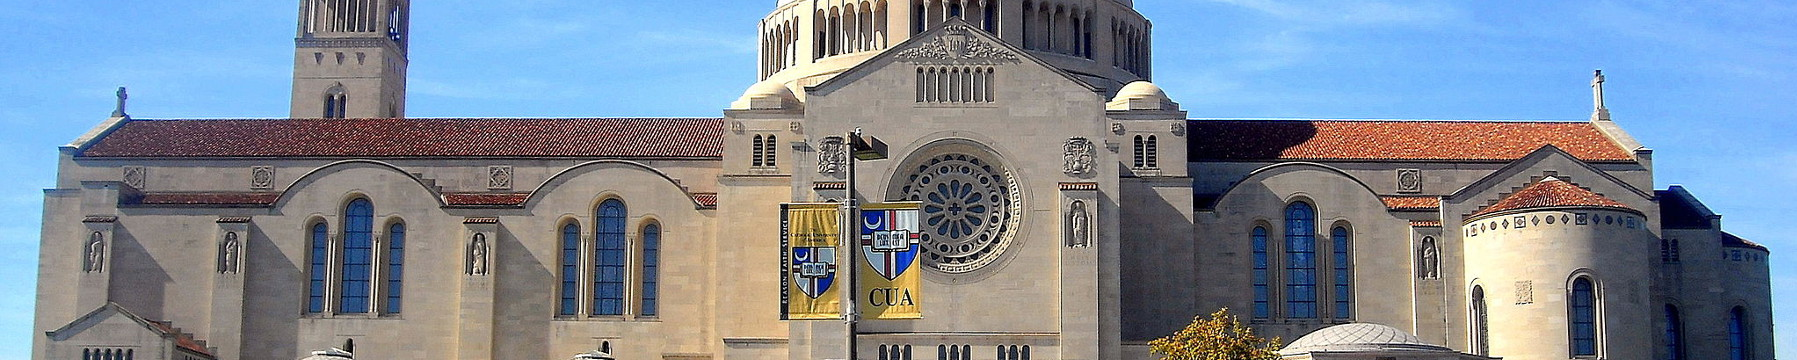 Basilica of the National Shrine in D.C